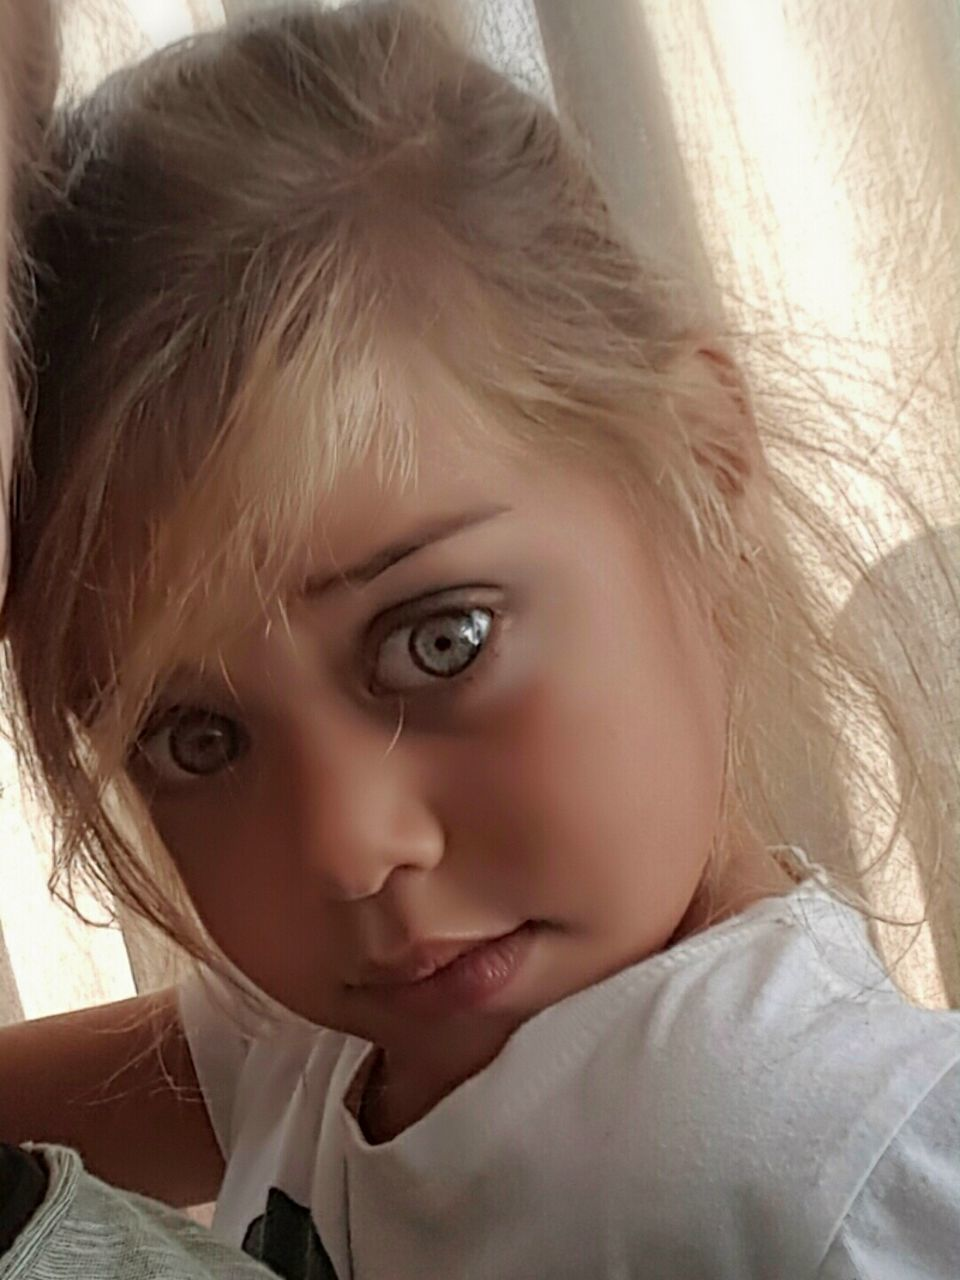 childhood, innocence, elementary age, real people, one person, cute, looking at camera, headshot, portrait, close-up, boys, girls, leisure activity, lifestyles, home interior, human face, indoors, blond hair, day